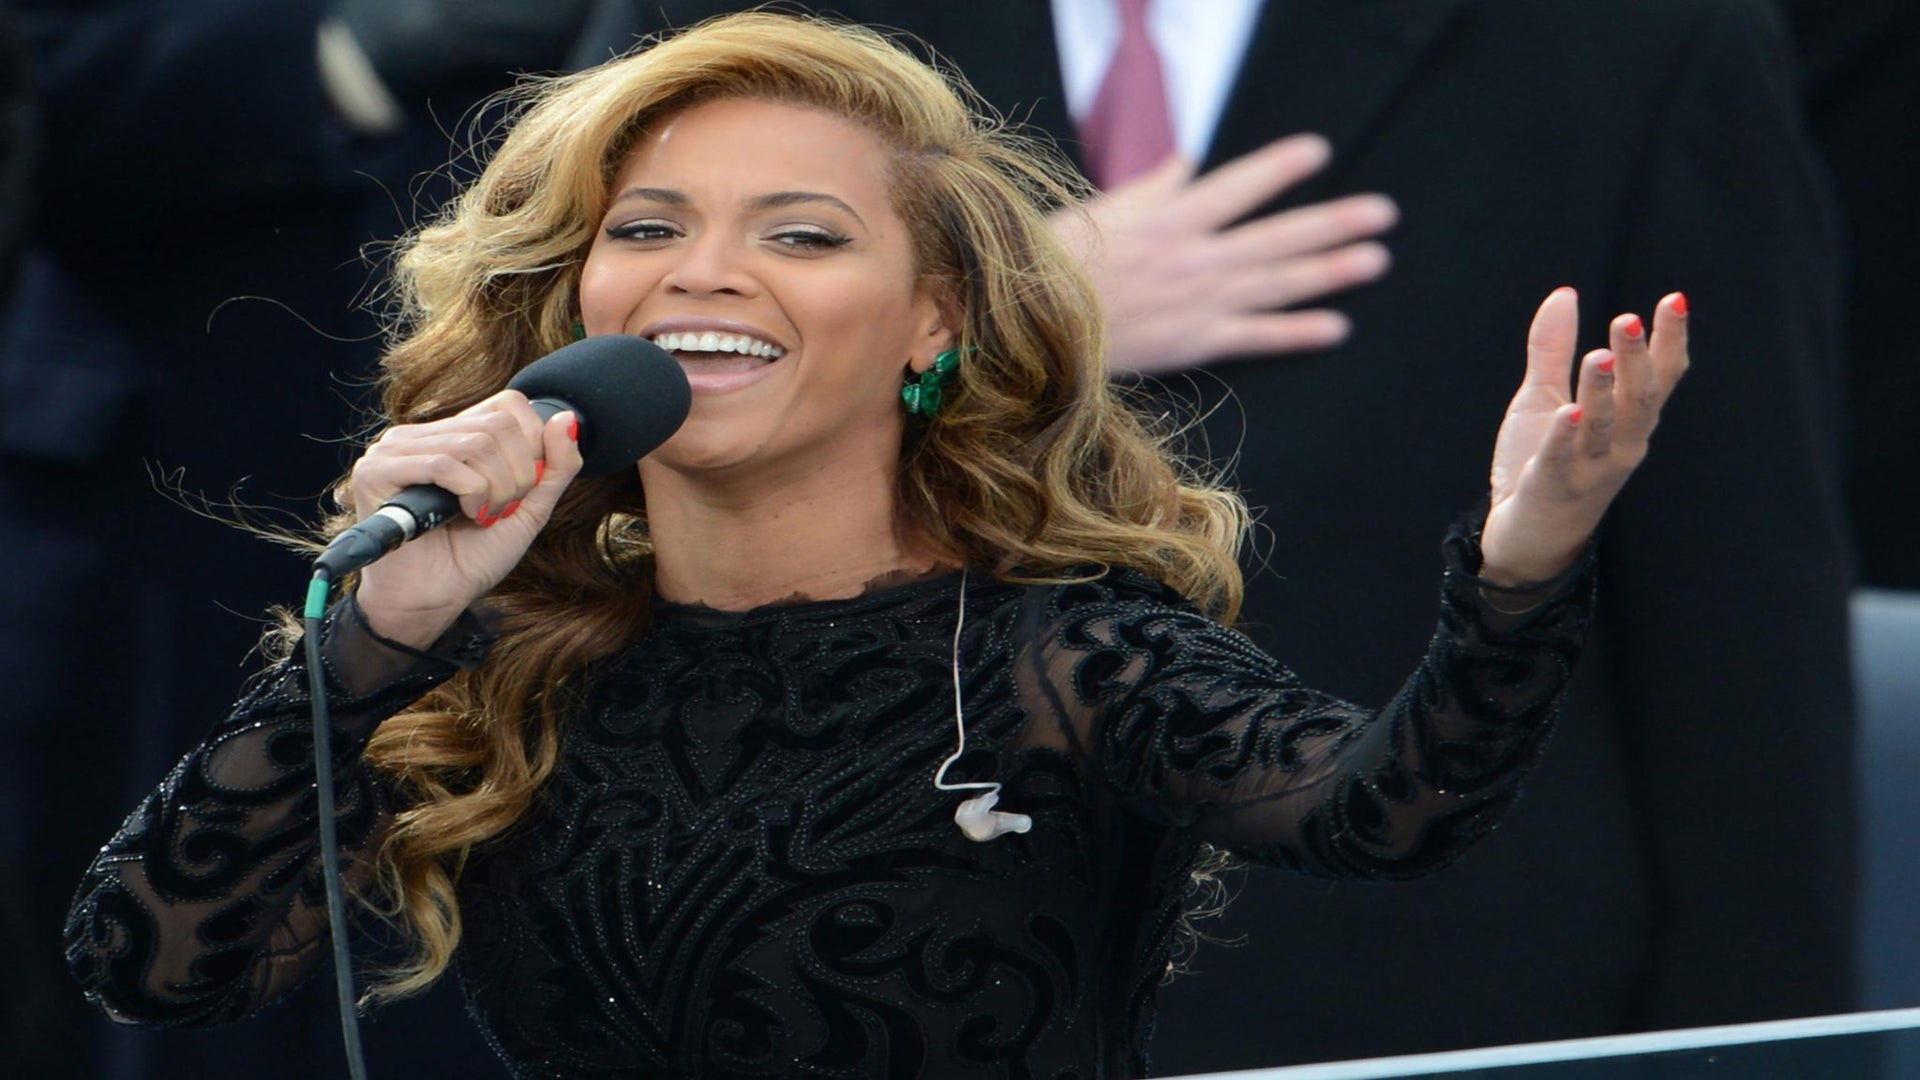 ESSENCE Poll: Do You Care Whether Or Not Beyonce Lip Synched the National Anthem?